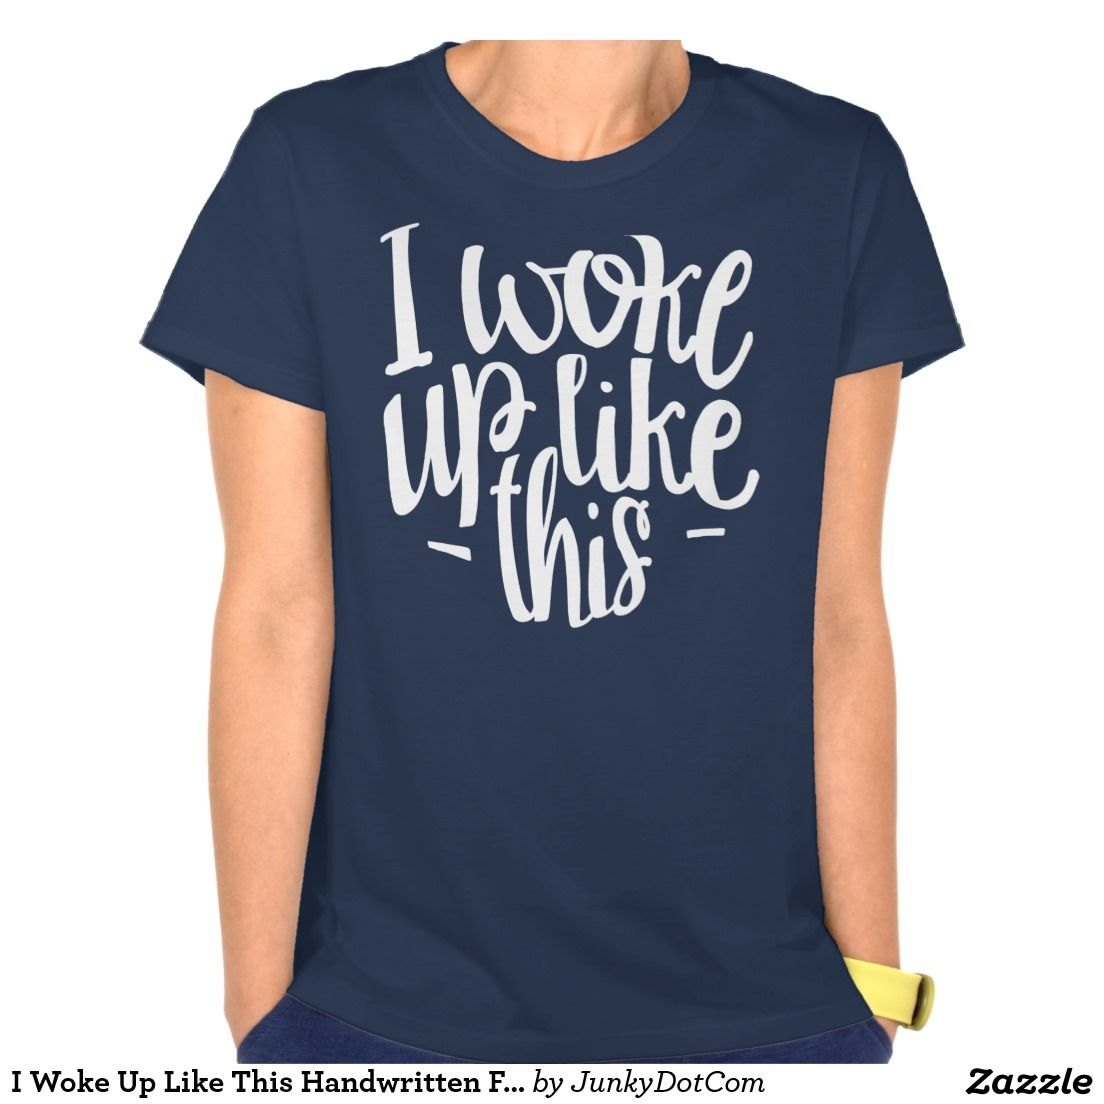 I Woke Up Like This Handwritten Funny Quote Tee Shirt - Front page #Zazzle - May 20